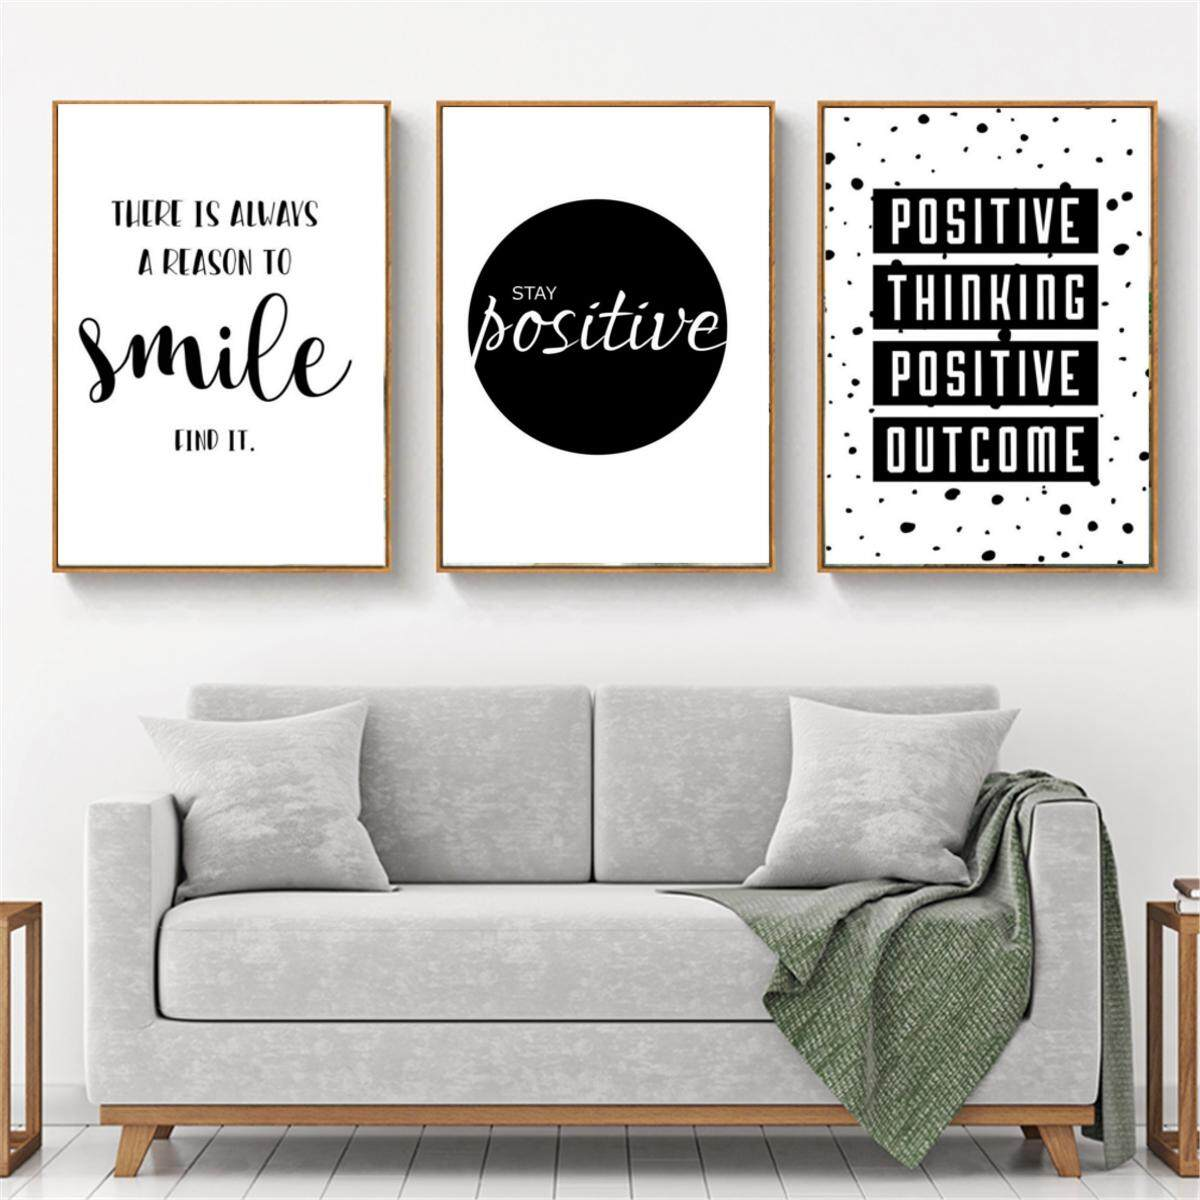 Inspirational Quote Wall Art Canvas Posters Black White Prints Modern Home  Decor Without Frame